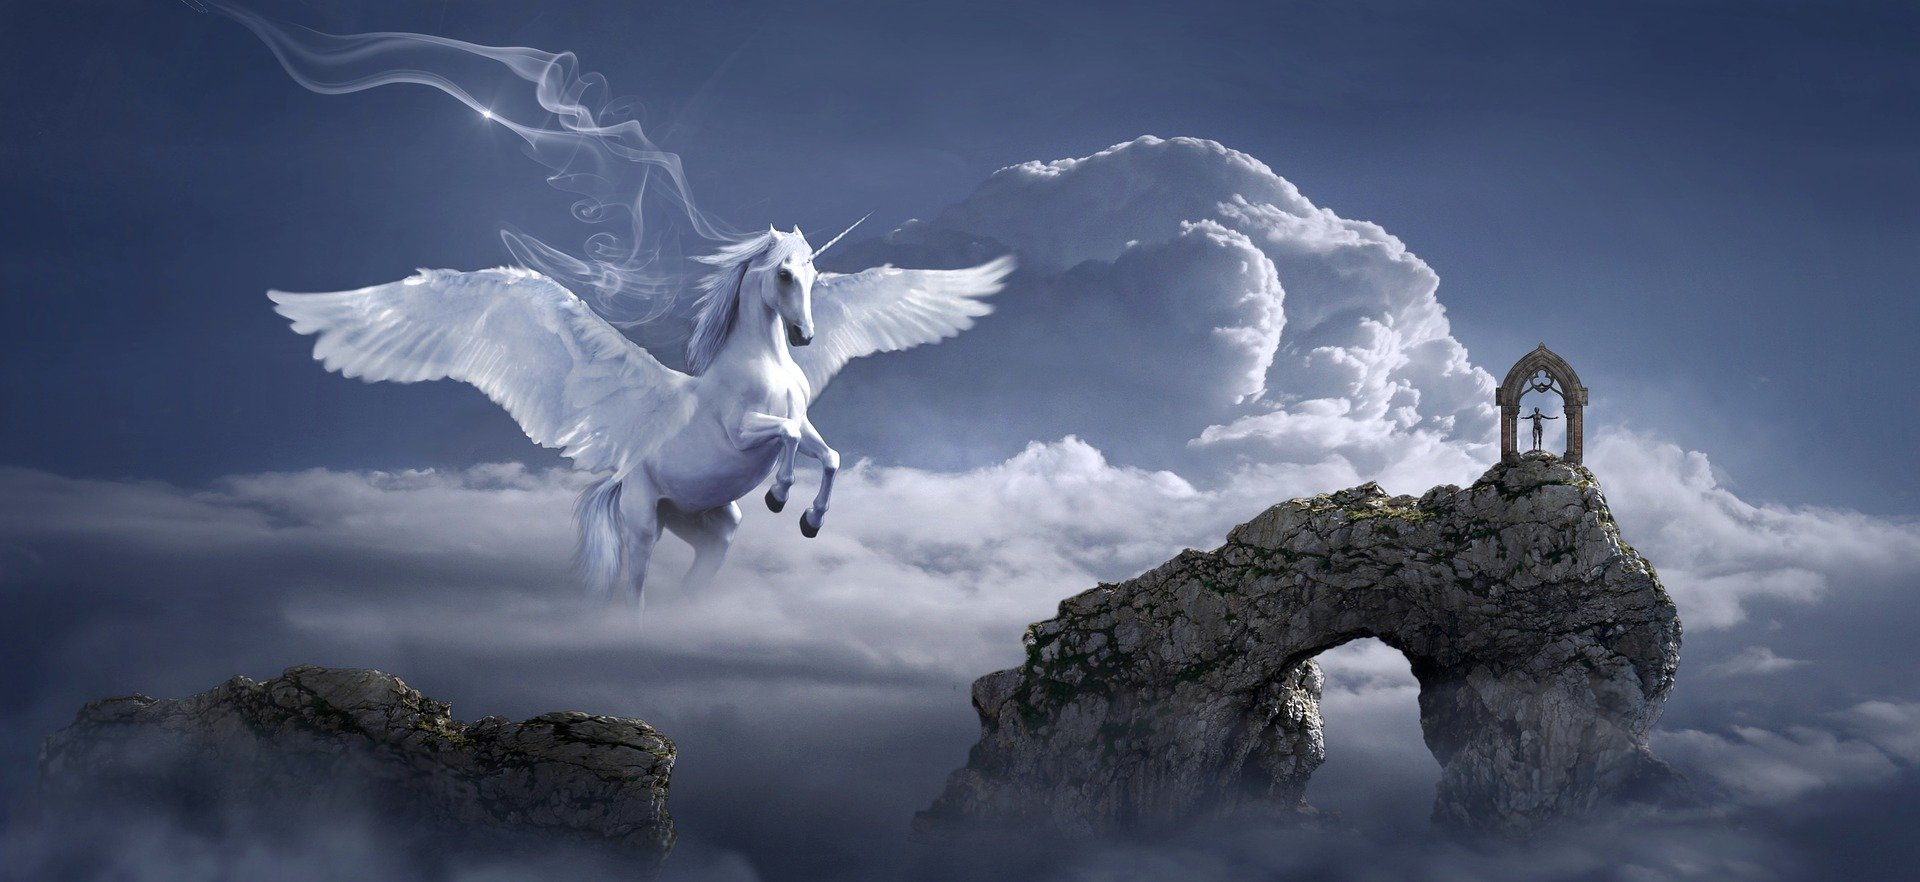 Pegasus flying over an archway in clouds. Photo courtesy of KELLEPICS on Pixabay.